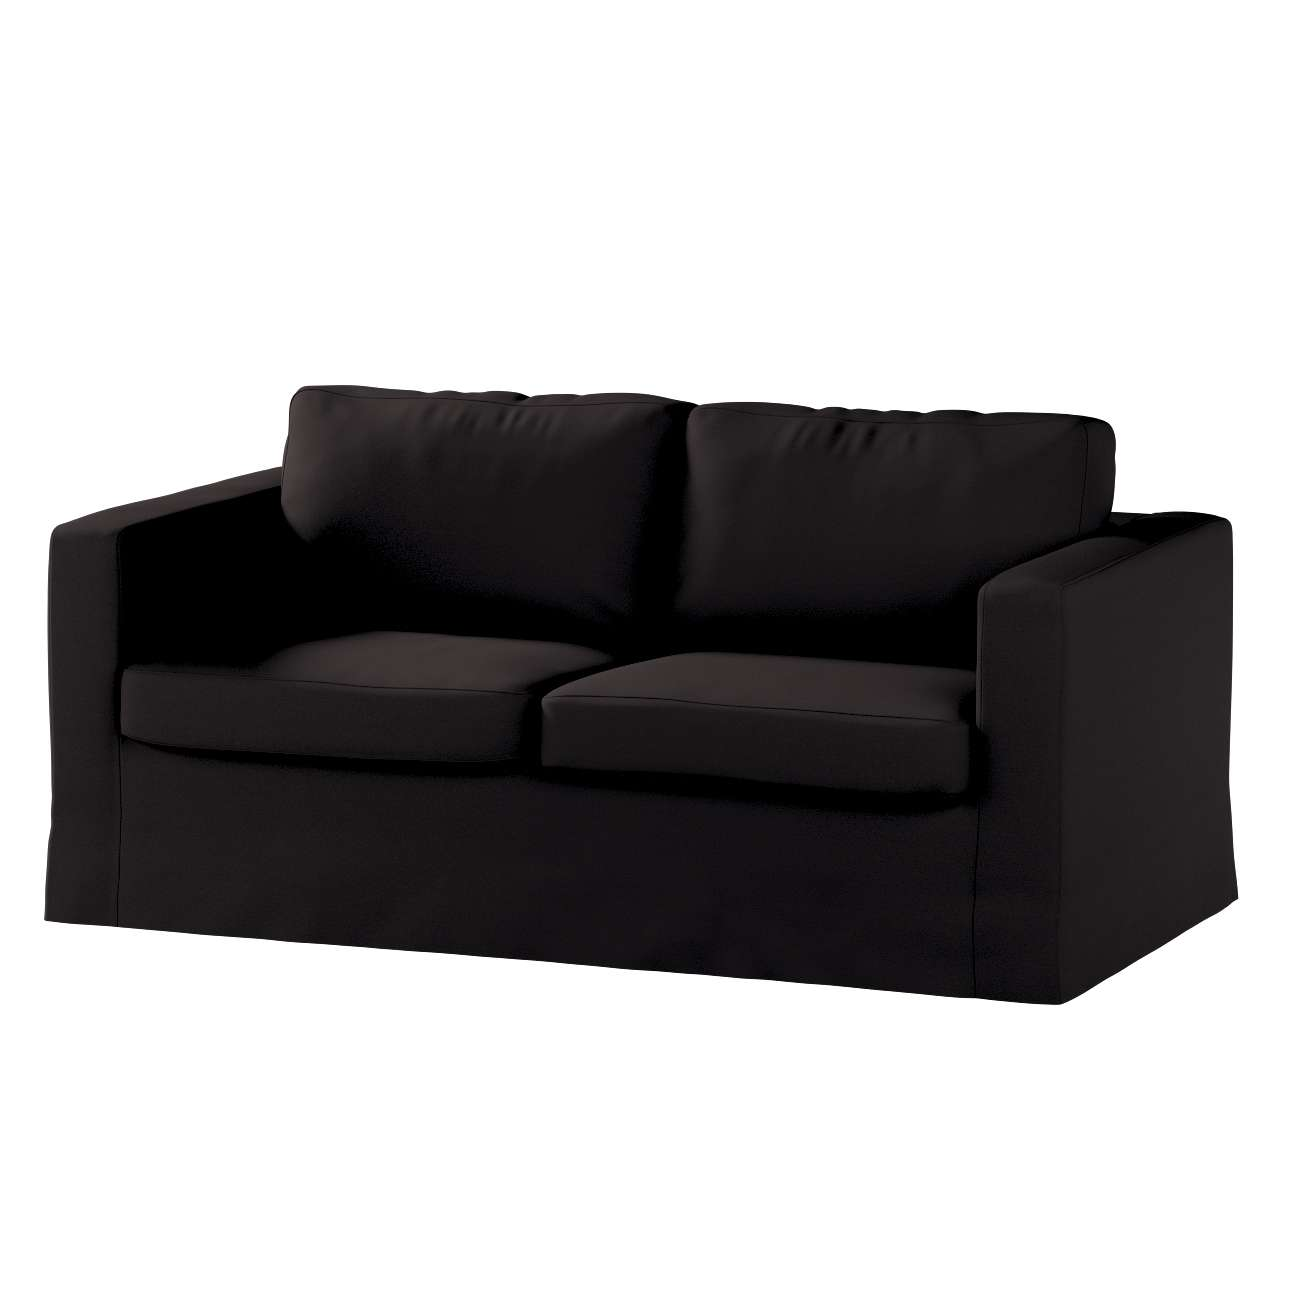 Floor length Karlstad 2-seater sofa cover in collection Panama Cotton, fabric: 702-09